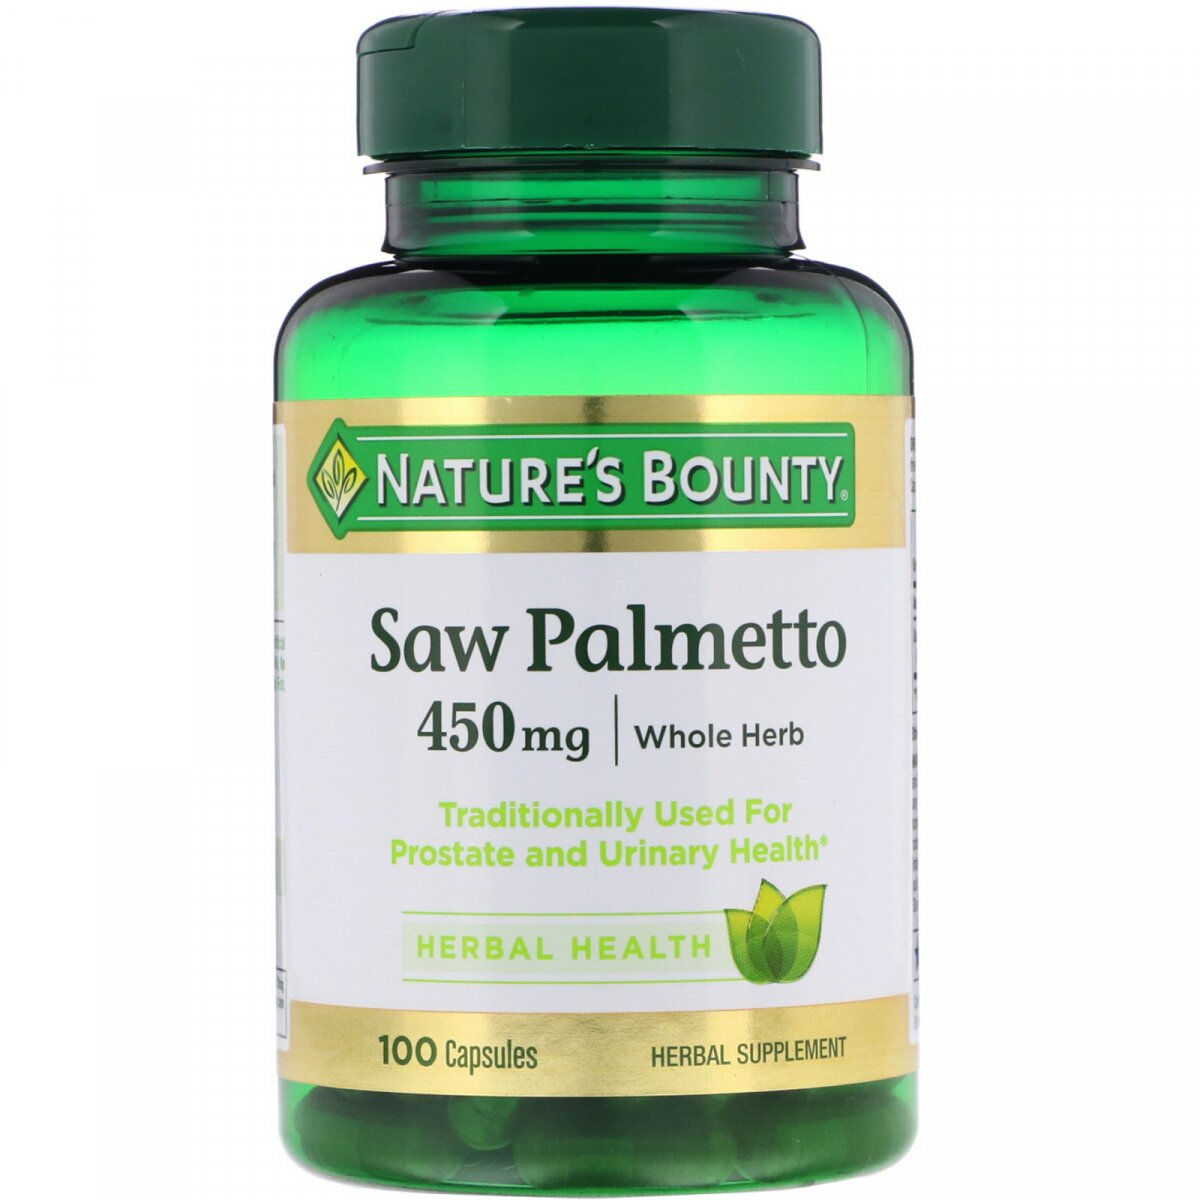 Со Пальметто, Saw Palmetto, Nature's Bounty, 450 мг, 100 капсул